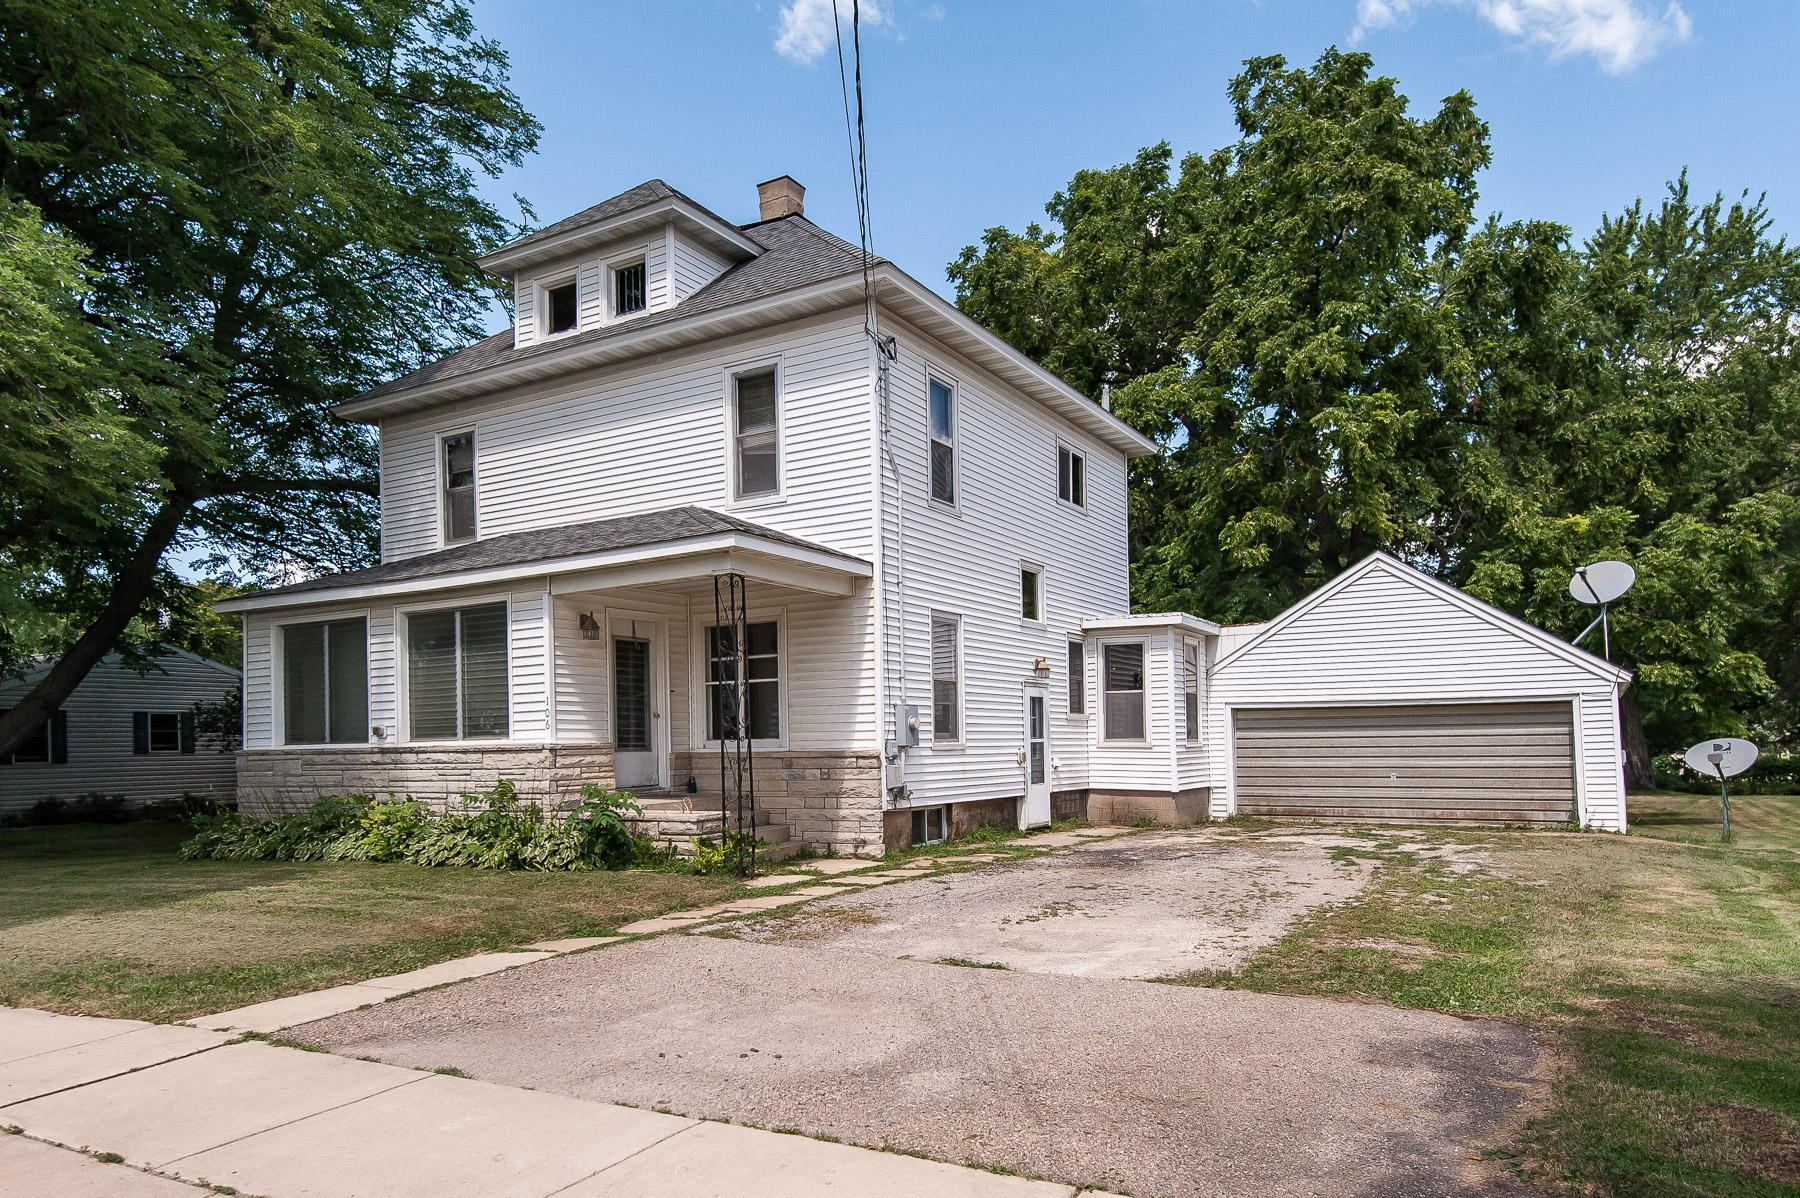 106 2nd Street NW Property Photo - Dodge Center, MN real estate listing